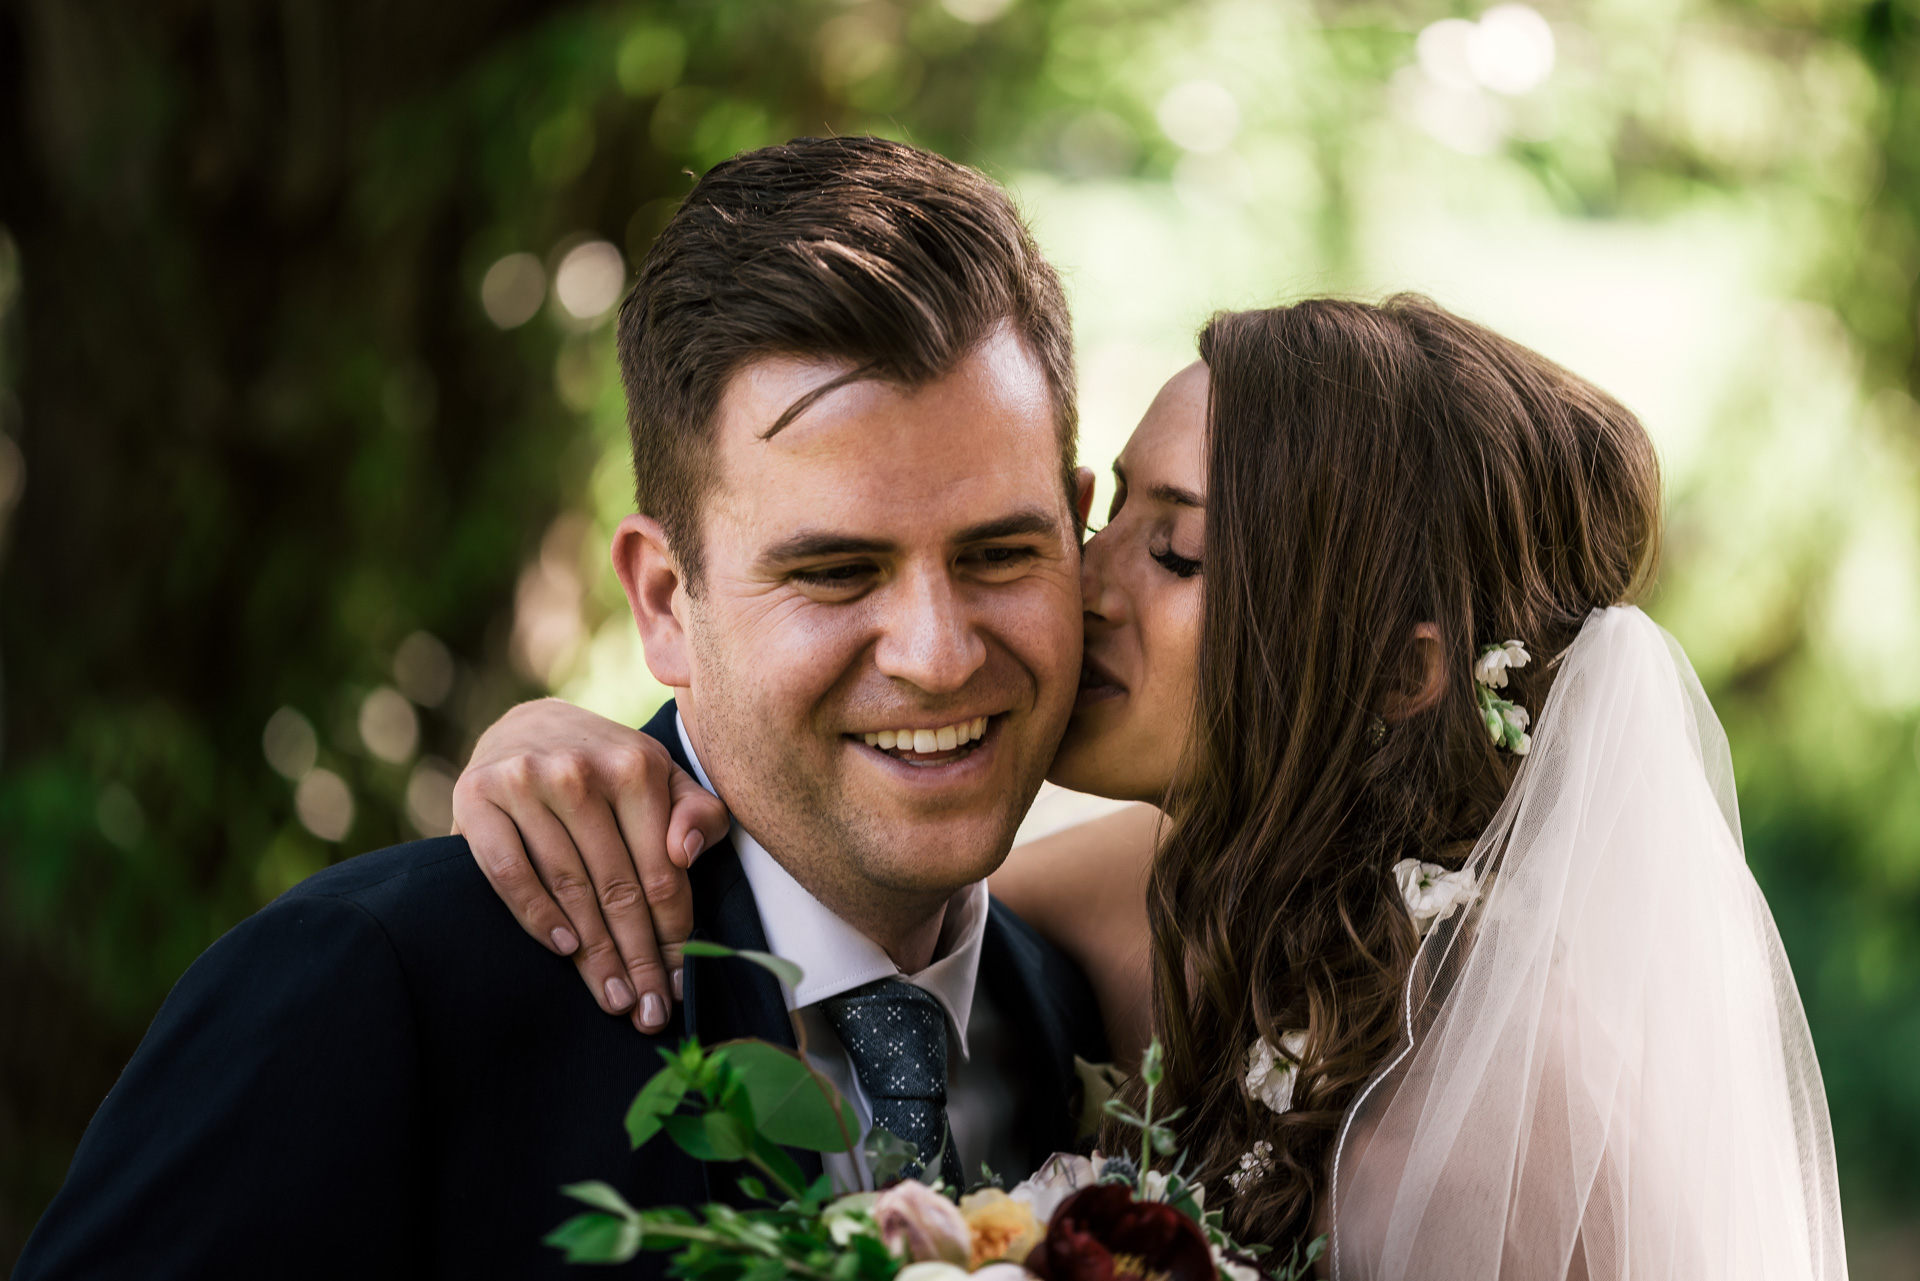 Bride kiss groom on the cheek at the secret garden located at the Historic Parish ranch in Oak Glen California